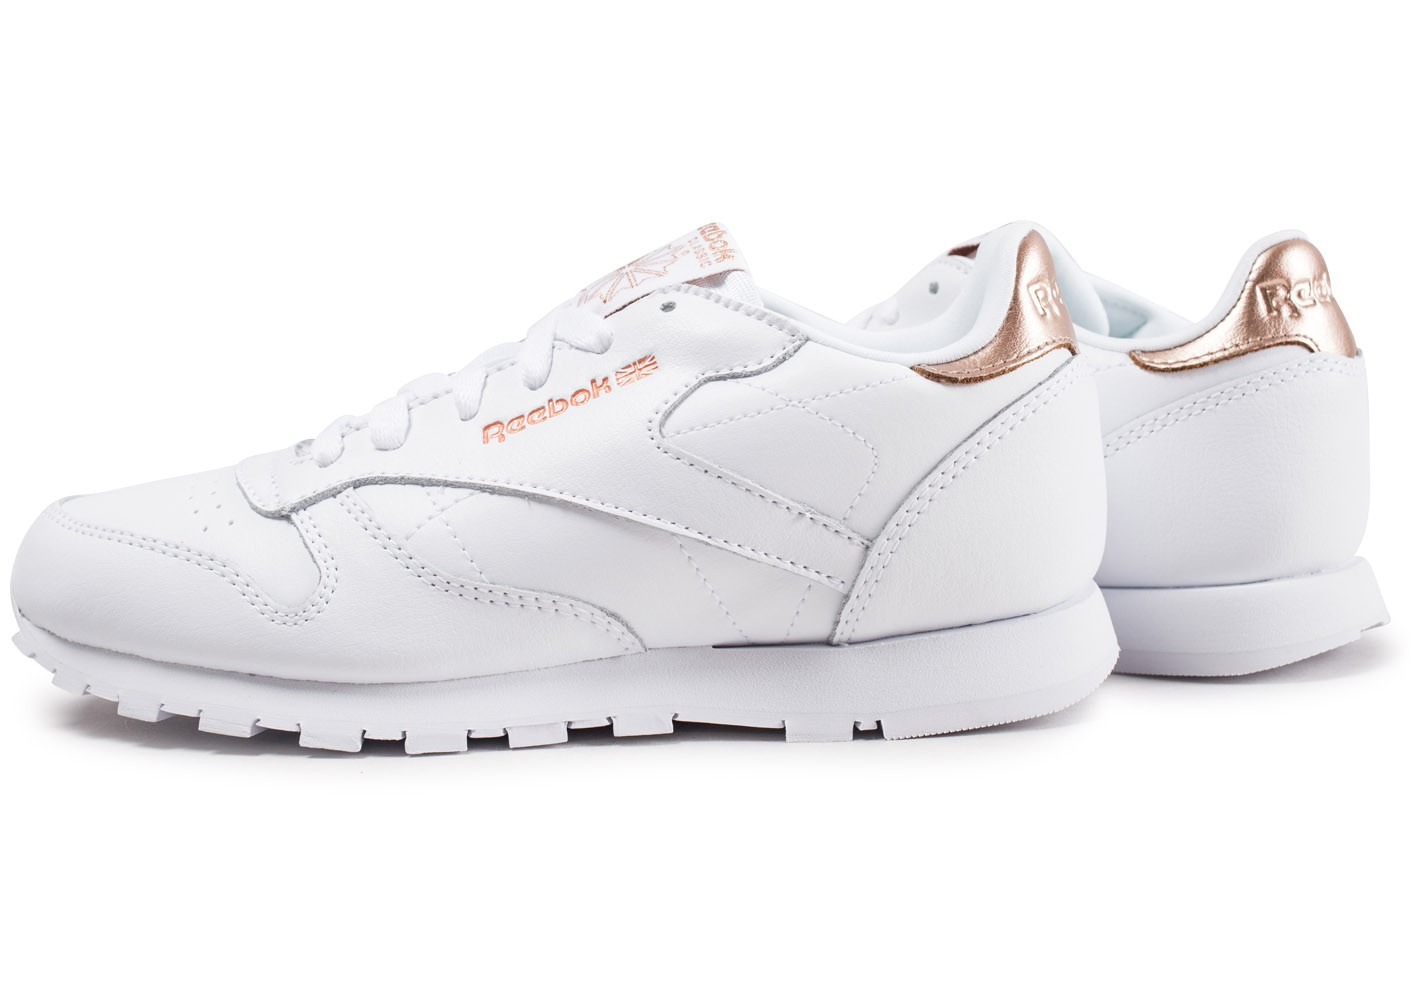 Reebok Classic Leather blanche et or junior Chaussures